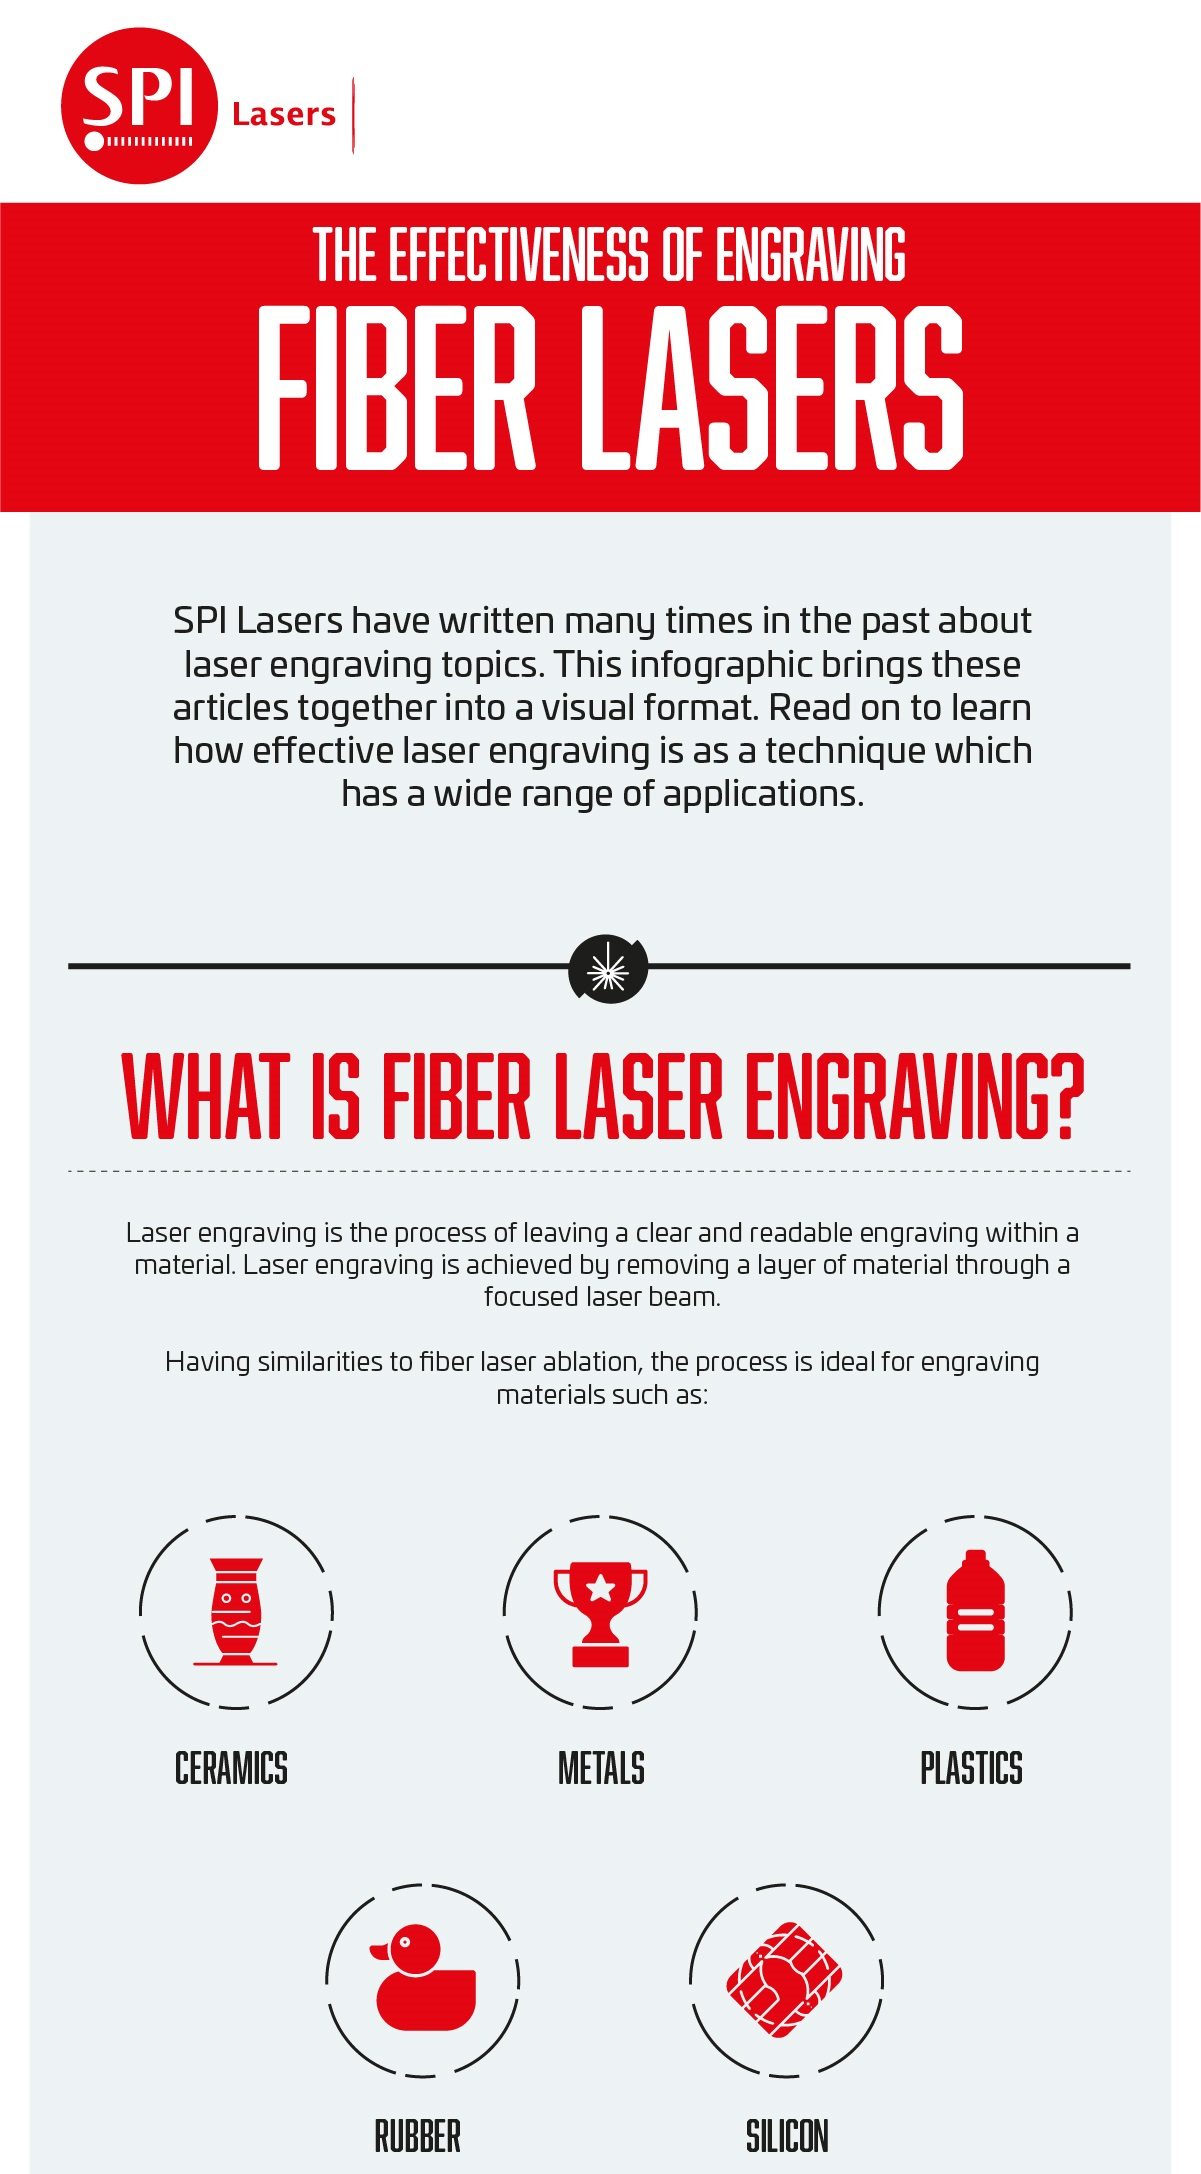 The Effectiveness of Engraving with Fiber Lasers Top Section